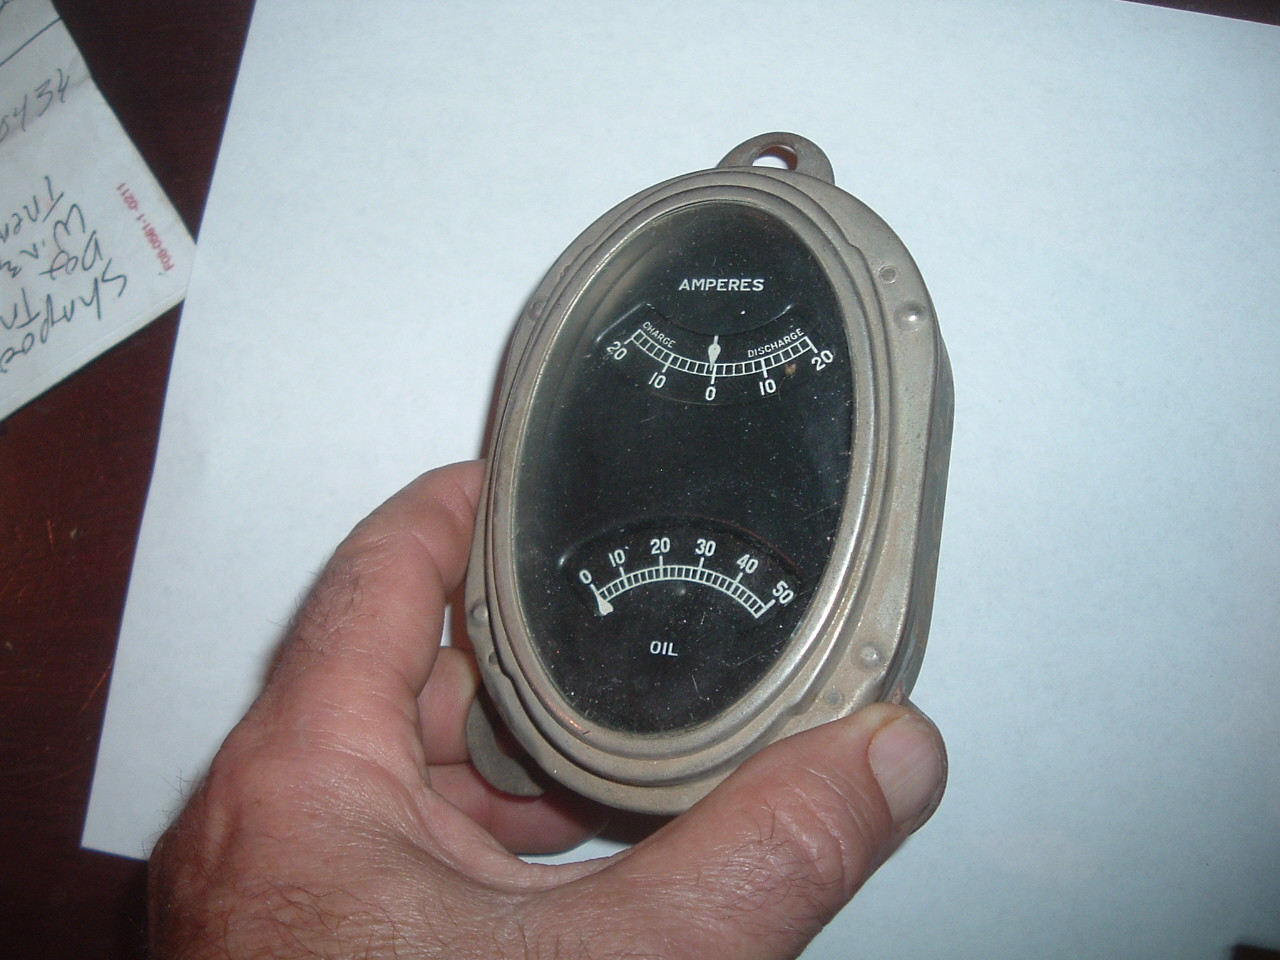 1926 1927 1928 Packard ammeter oil gauge assembly original (z 27packardgauge)